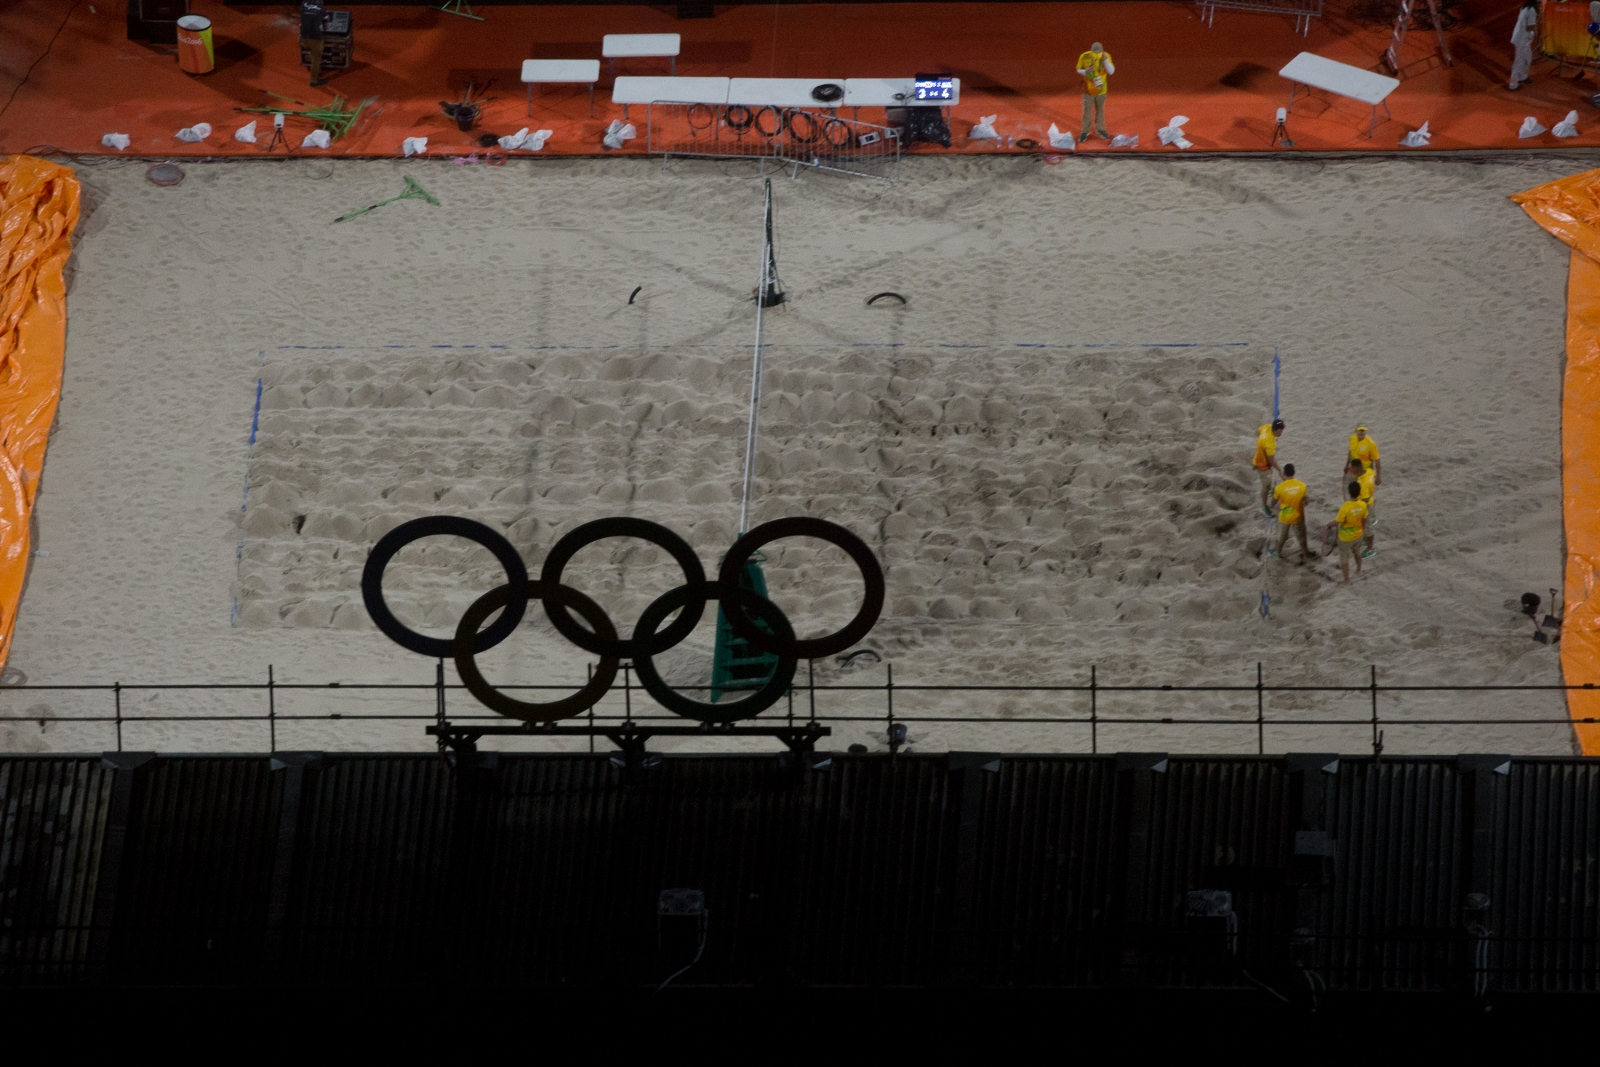 Olympic Beach Volley ball stadium